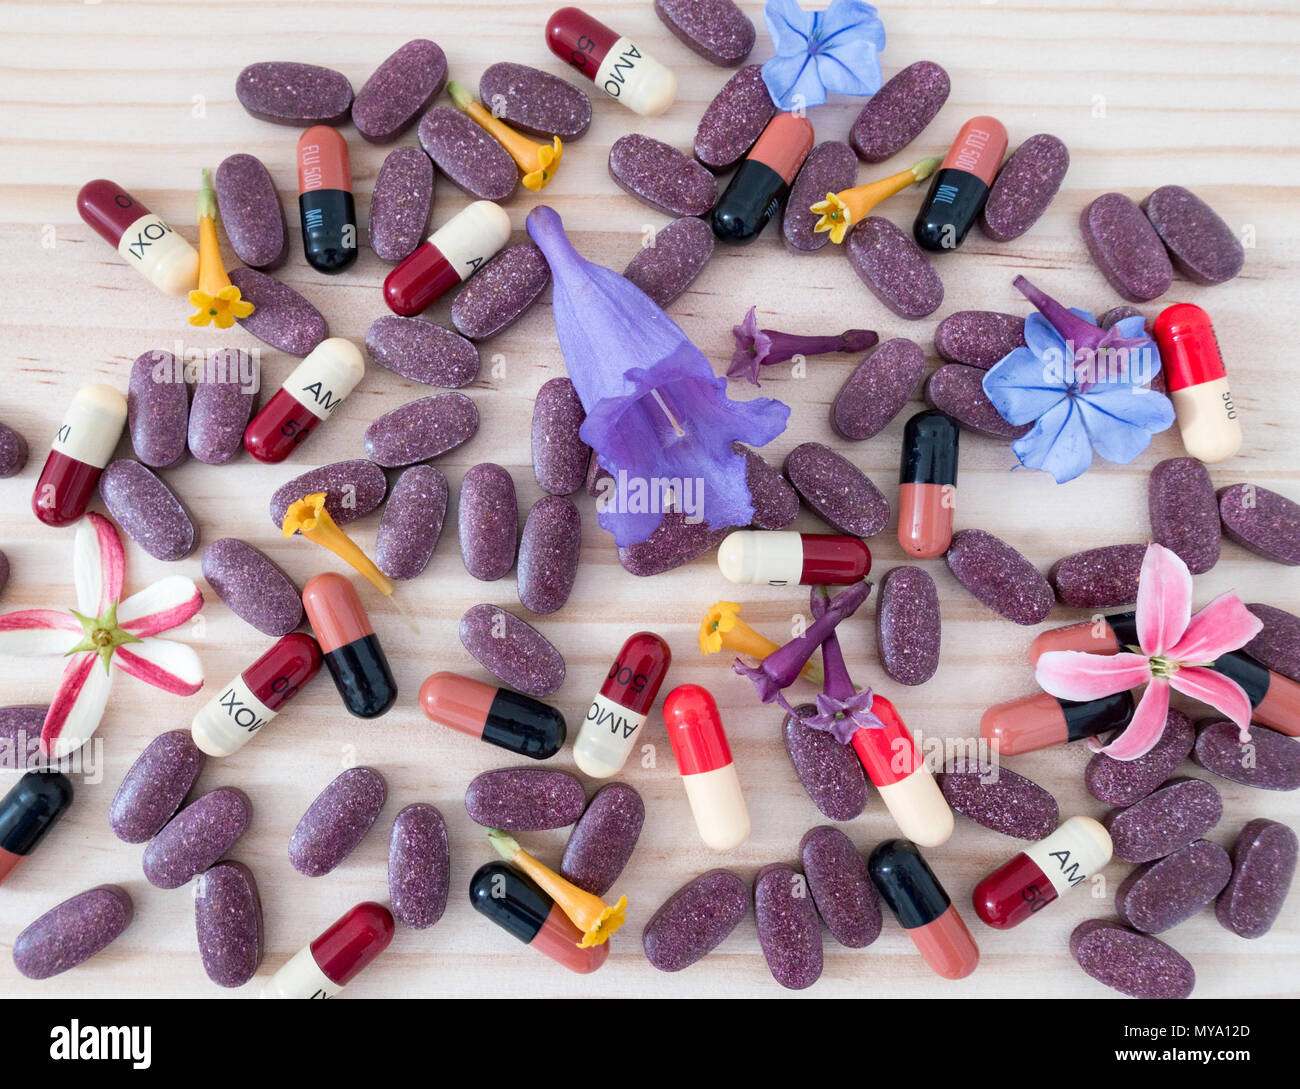 Homeopathy concept image: Amoxicillin and Flucloxacillin antibiotics capsules, flowers and Cranberry tablets on pine table. - Stock Image